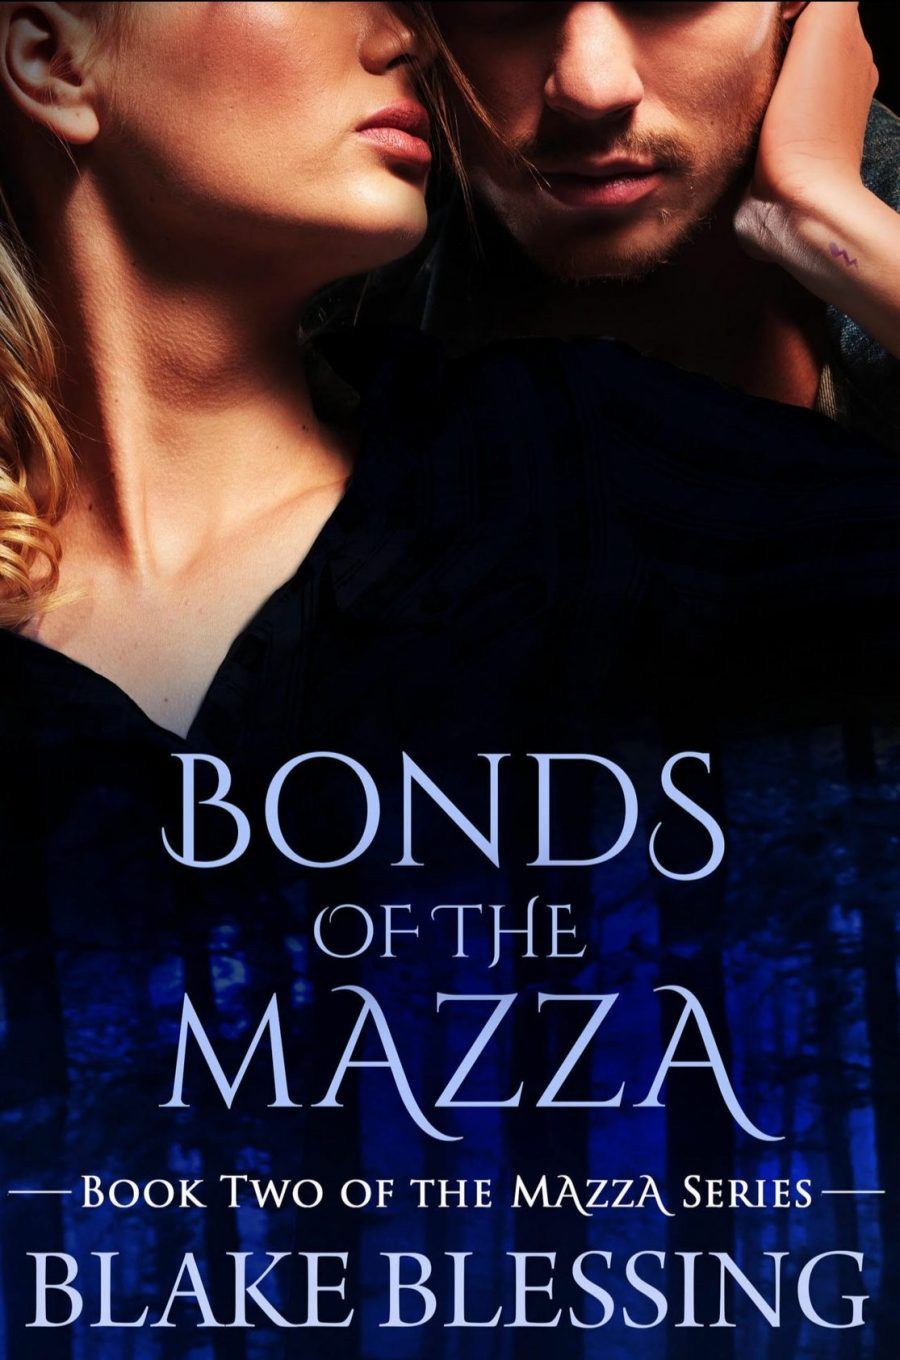 Bonds of the Mazza *The Mazza Series - Book 2* by Blake Blessing - A Book Review #BookReview #WhyChoose #RH #ReverseHarem #FastBurn #PNR #Paranormal